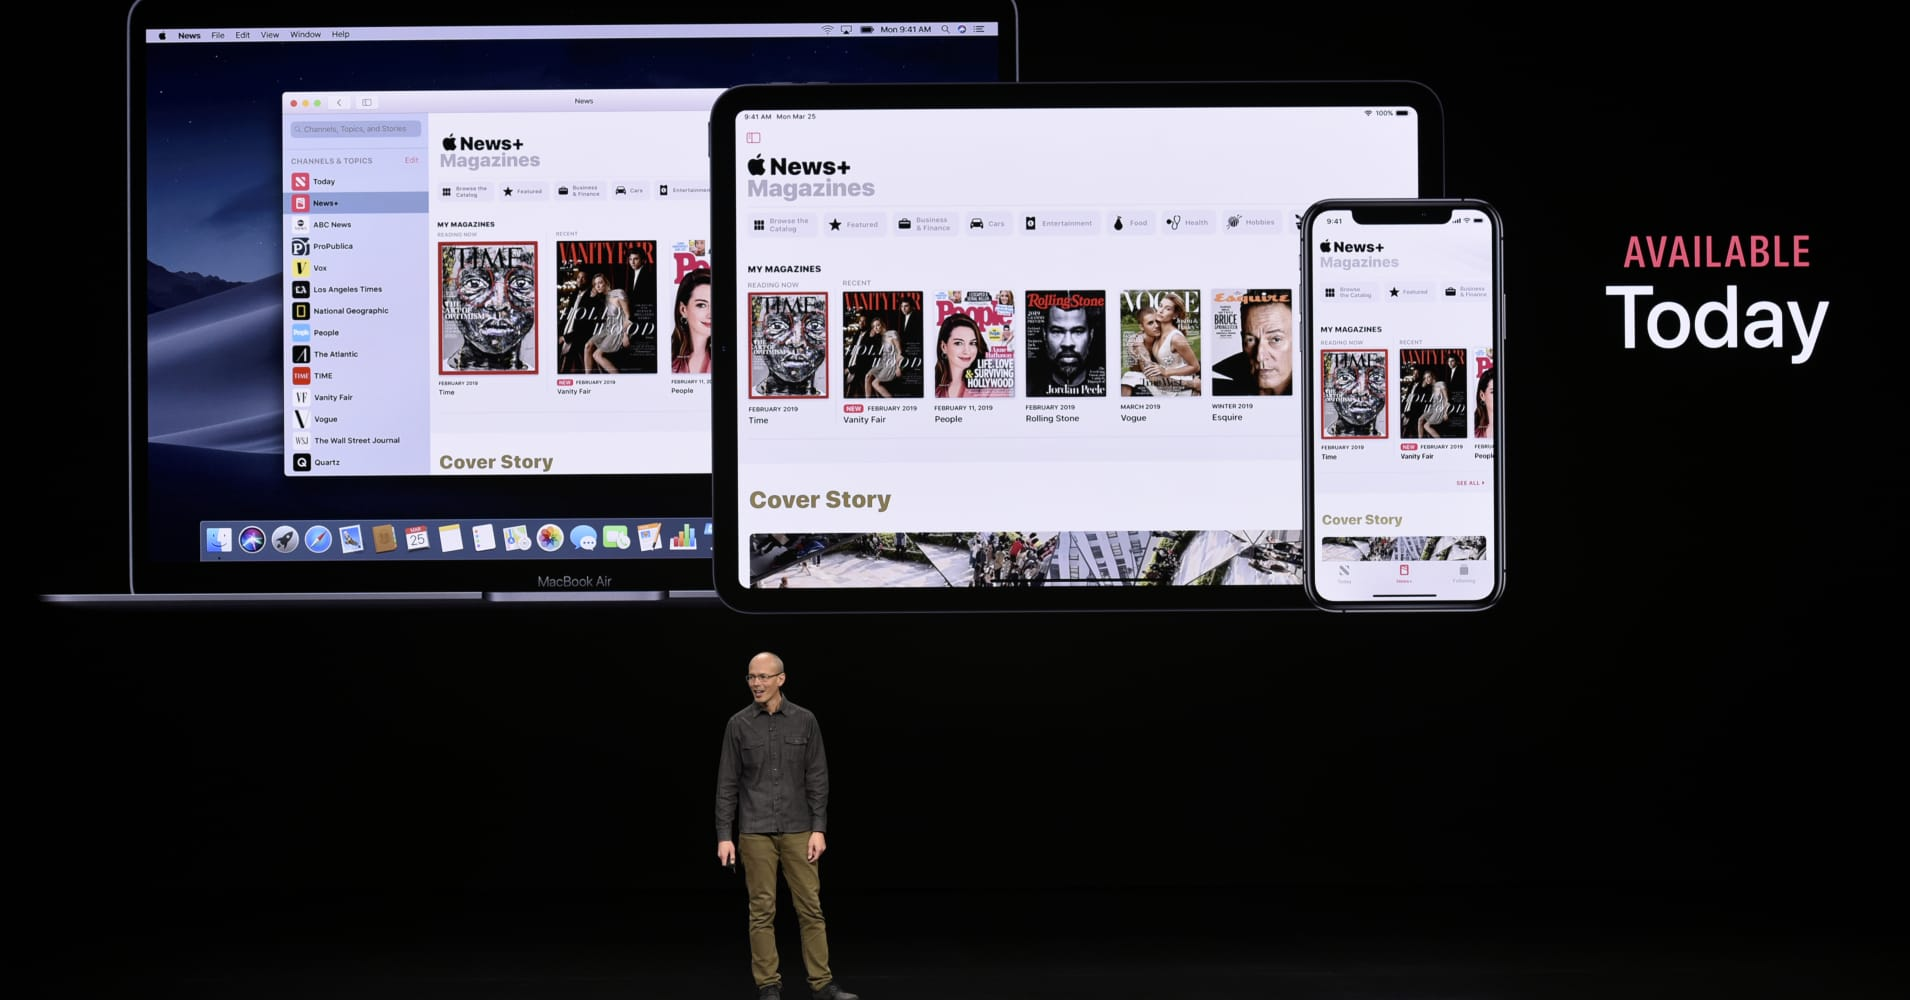 Apple's first new services product, Apple News+ suffers brief outages on its first day